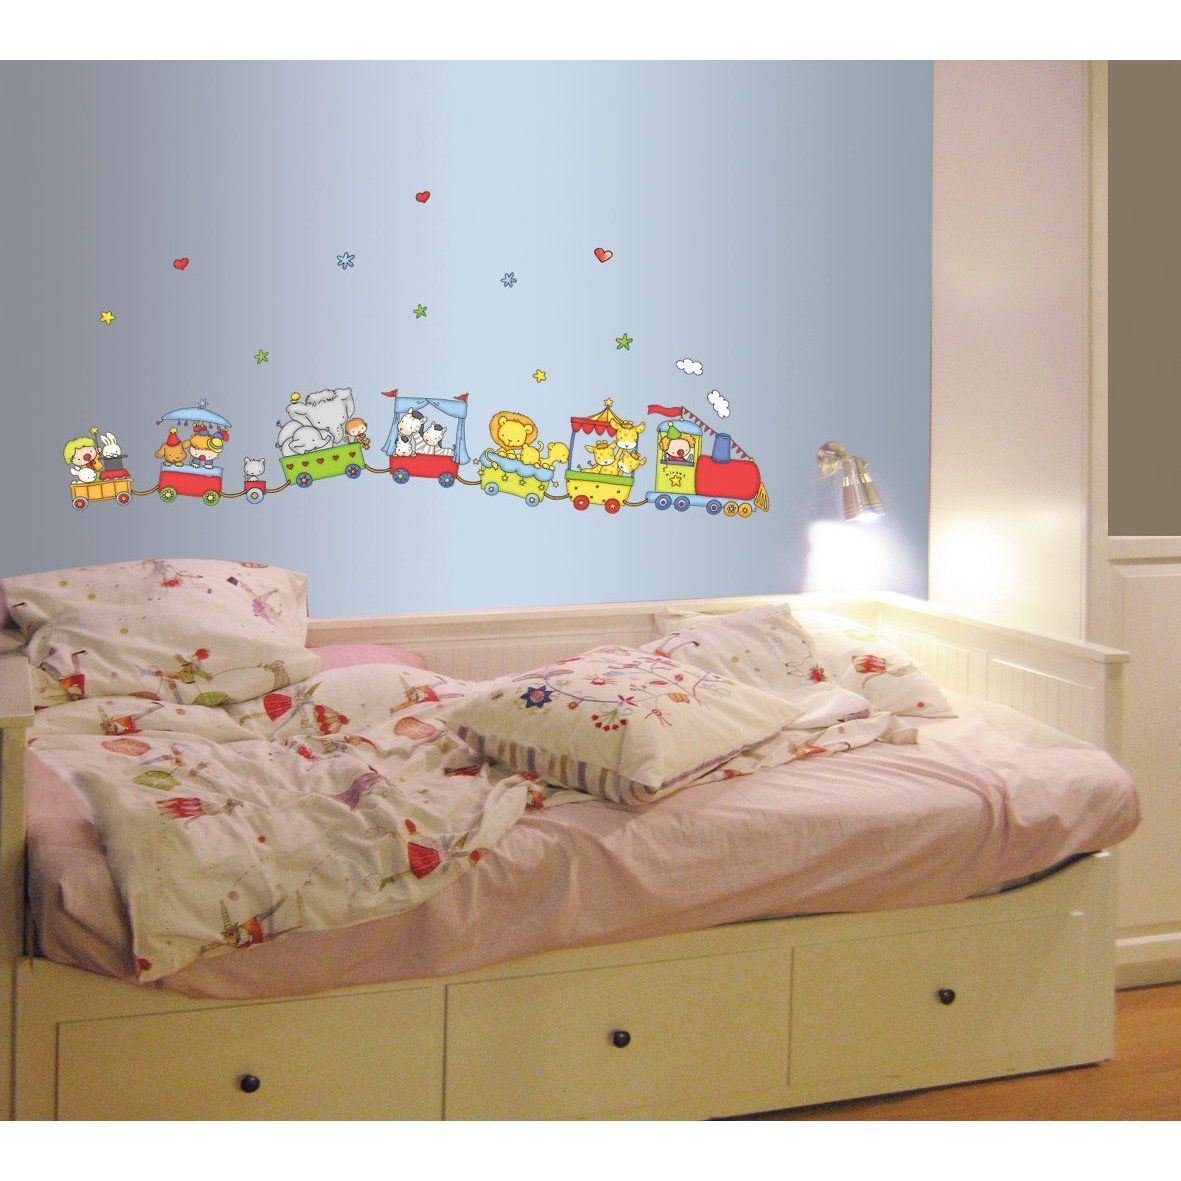 Painting walls ideas wall decals - Retro Wall Stickers Children Google